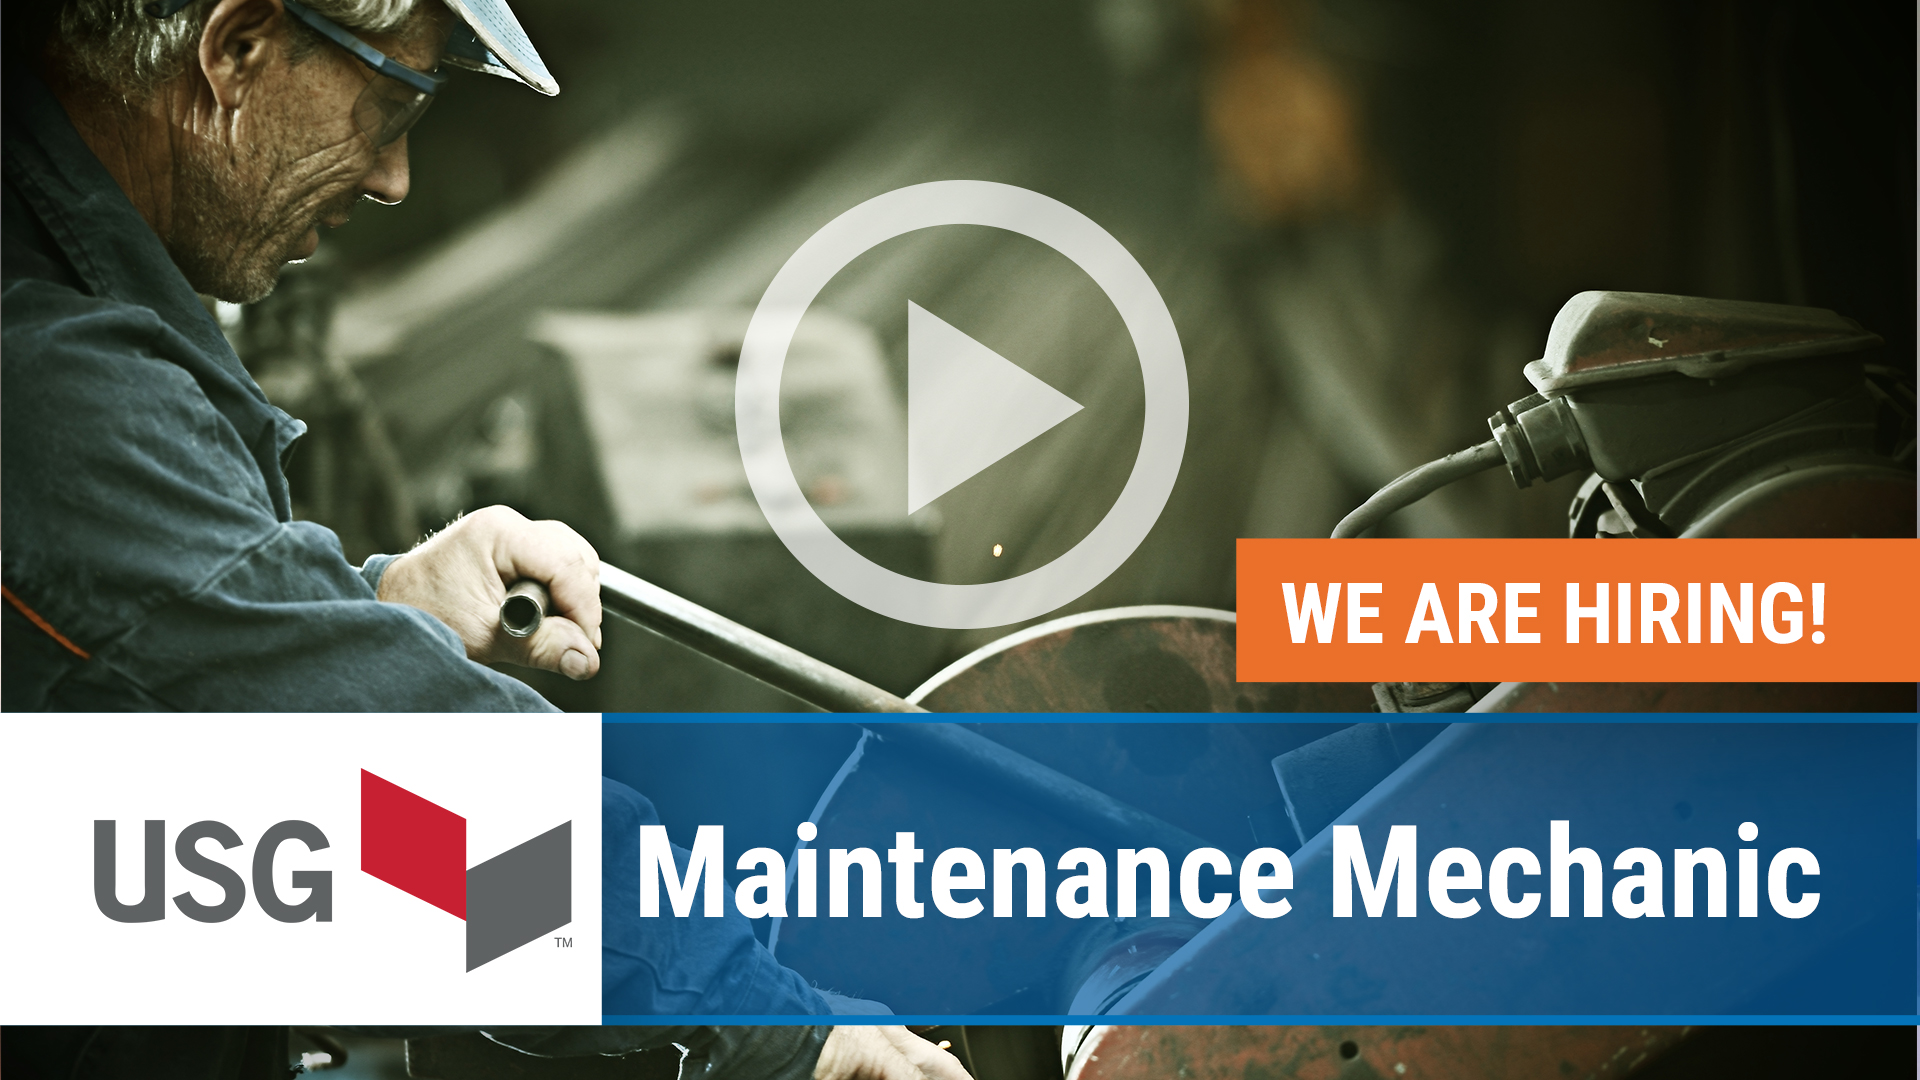 Watch our careers video for available job opening Maintenance Mechanic in Sweetwater, TX